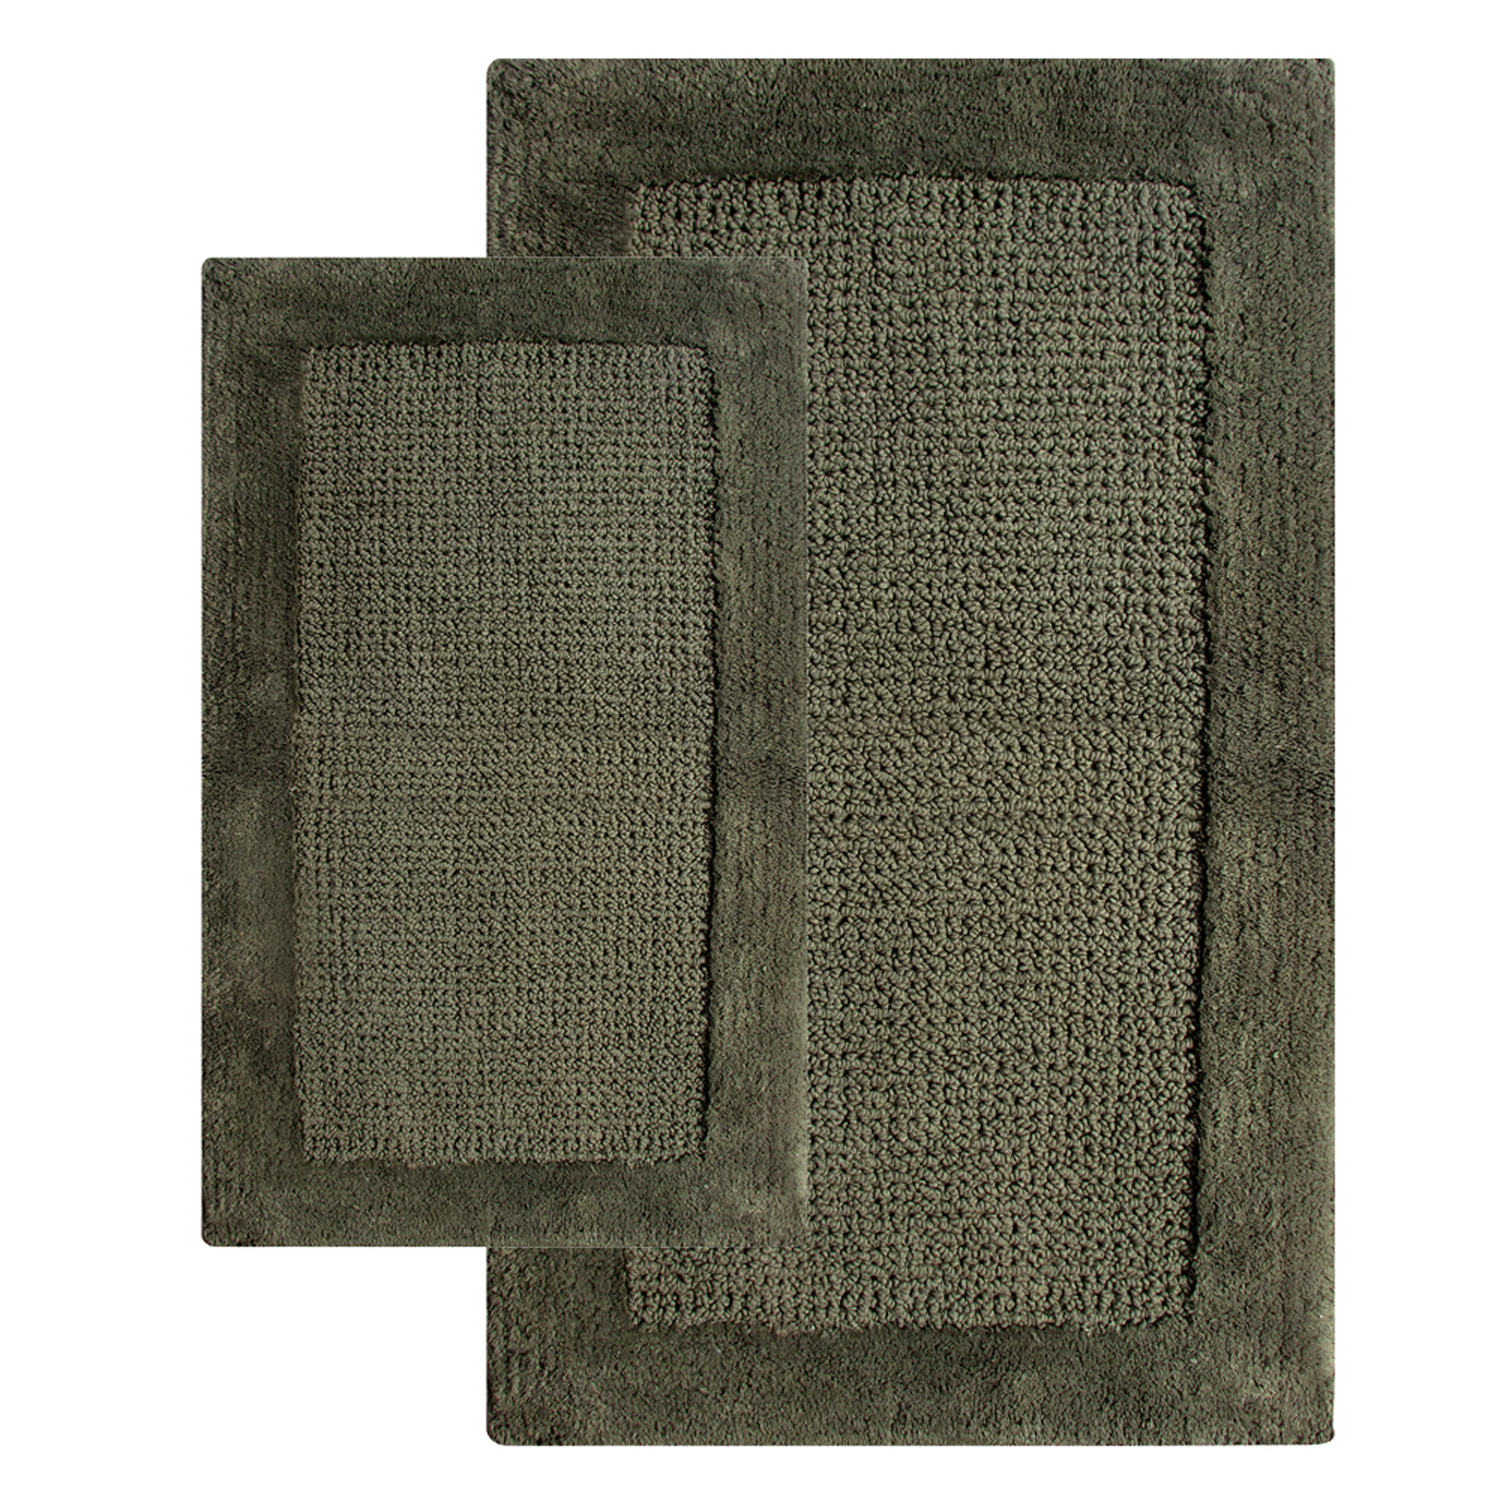 Chesapeake Merchandising Naples 2-pc. Bath Rug Set by Chesapeake Merchandising